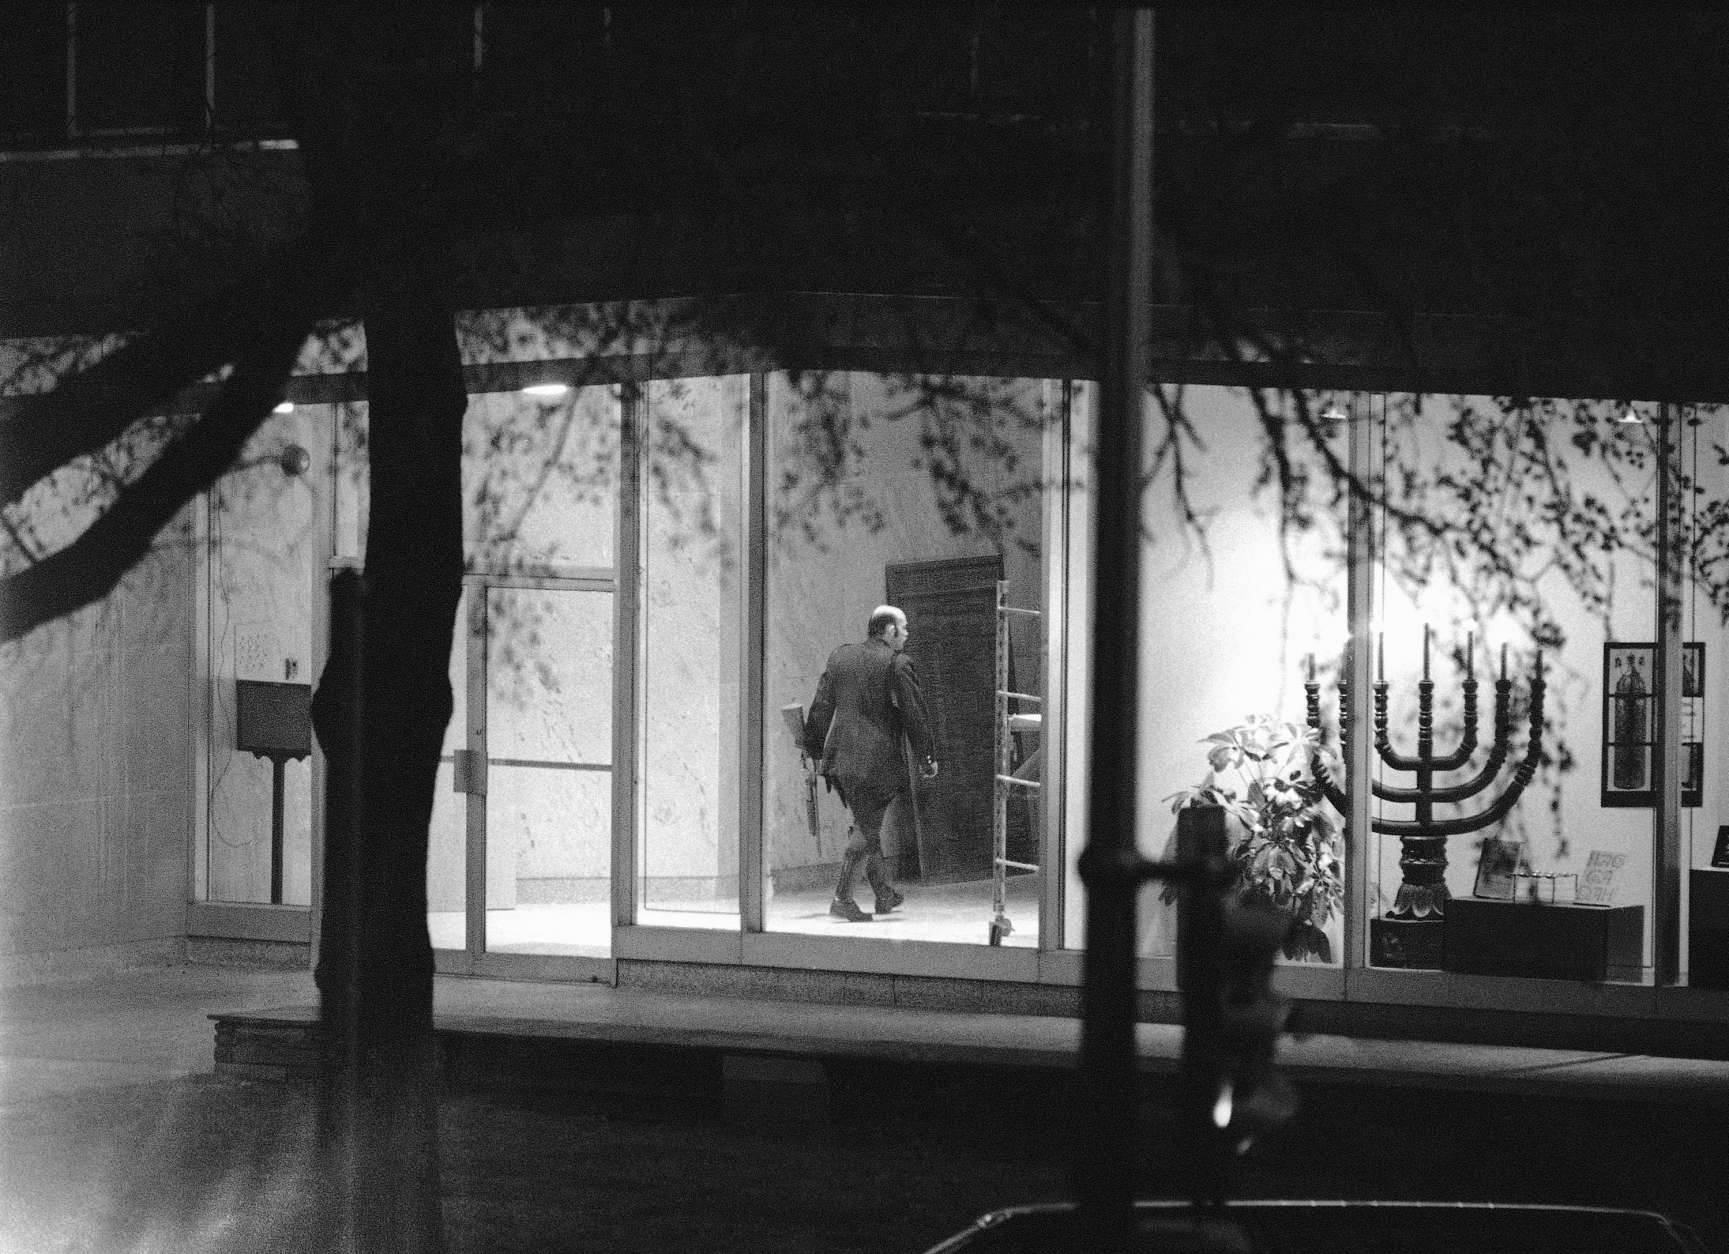 A policeman carries a shotgun as he walks inside B'Nai B'Rith headquarters in Washington on Thursday, March 10, 1977 where gunmen are holding people hostage. At right is a Menorah, holy candelabra. (AP Photo/Charles Tasnadi)